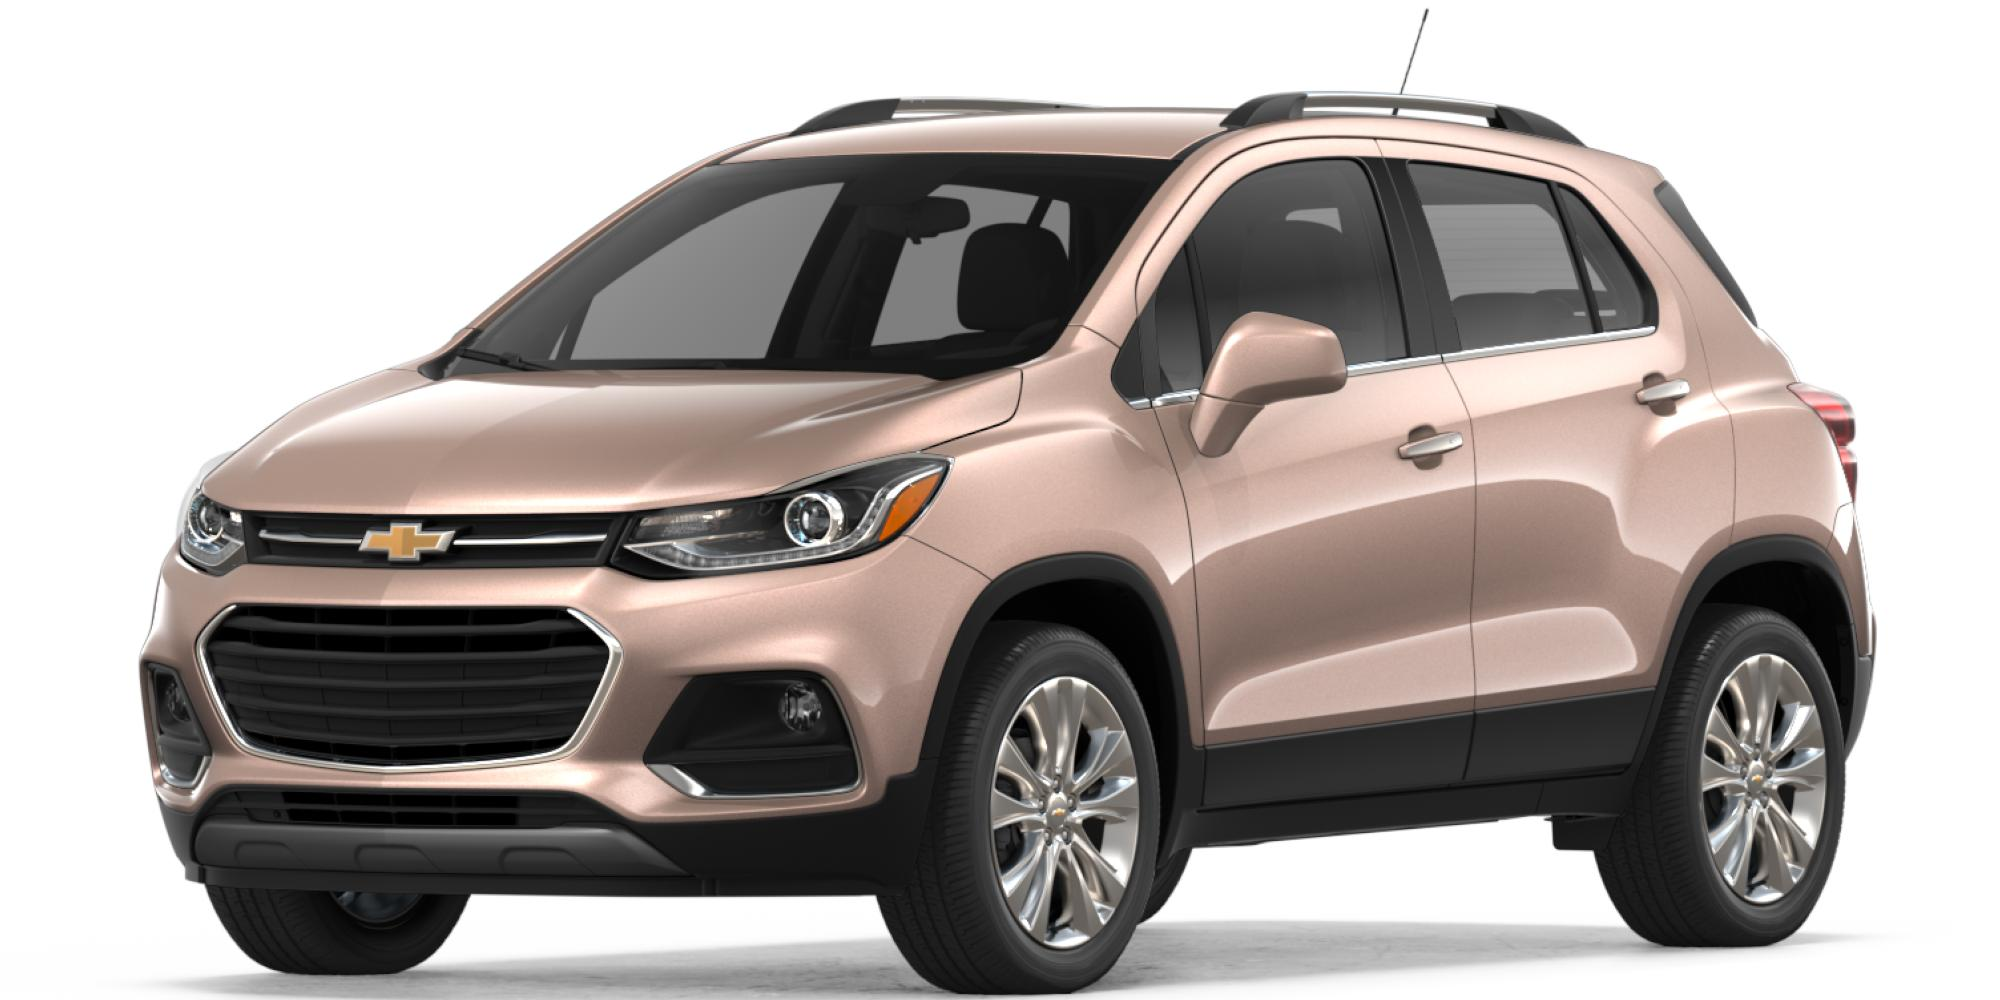 chevrolet trax images with Trax Small Suv on Watch further Car Dashboard Warning Lights The  plete Guide further 2017 further Chevrolet Ss Gets Expressive With Addition Of New Color Choices For 2015 together with Chevrolet Ss Gets Expressive With Addition Of New Color Choices For 2015.